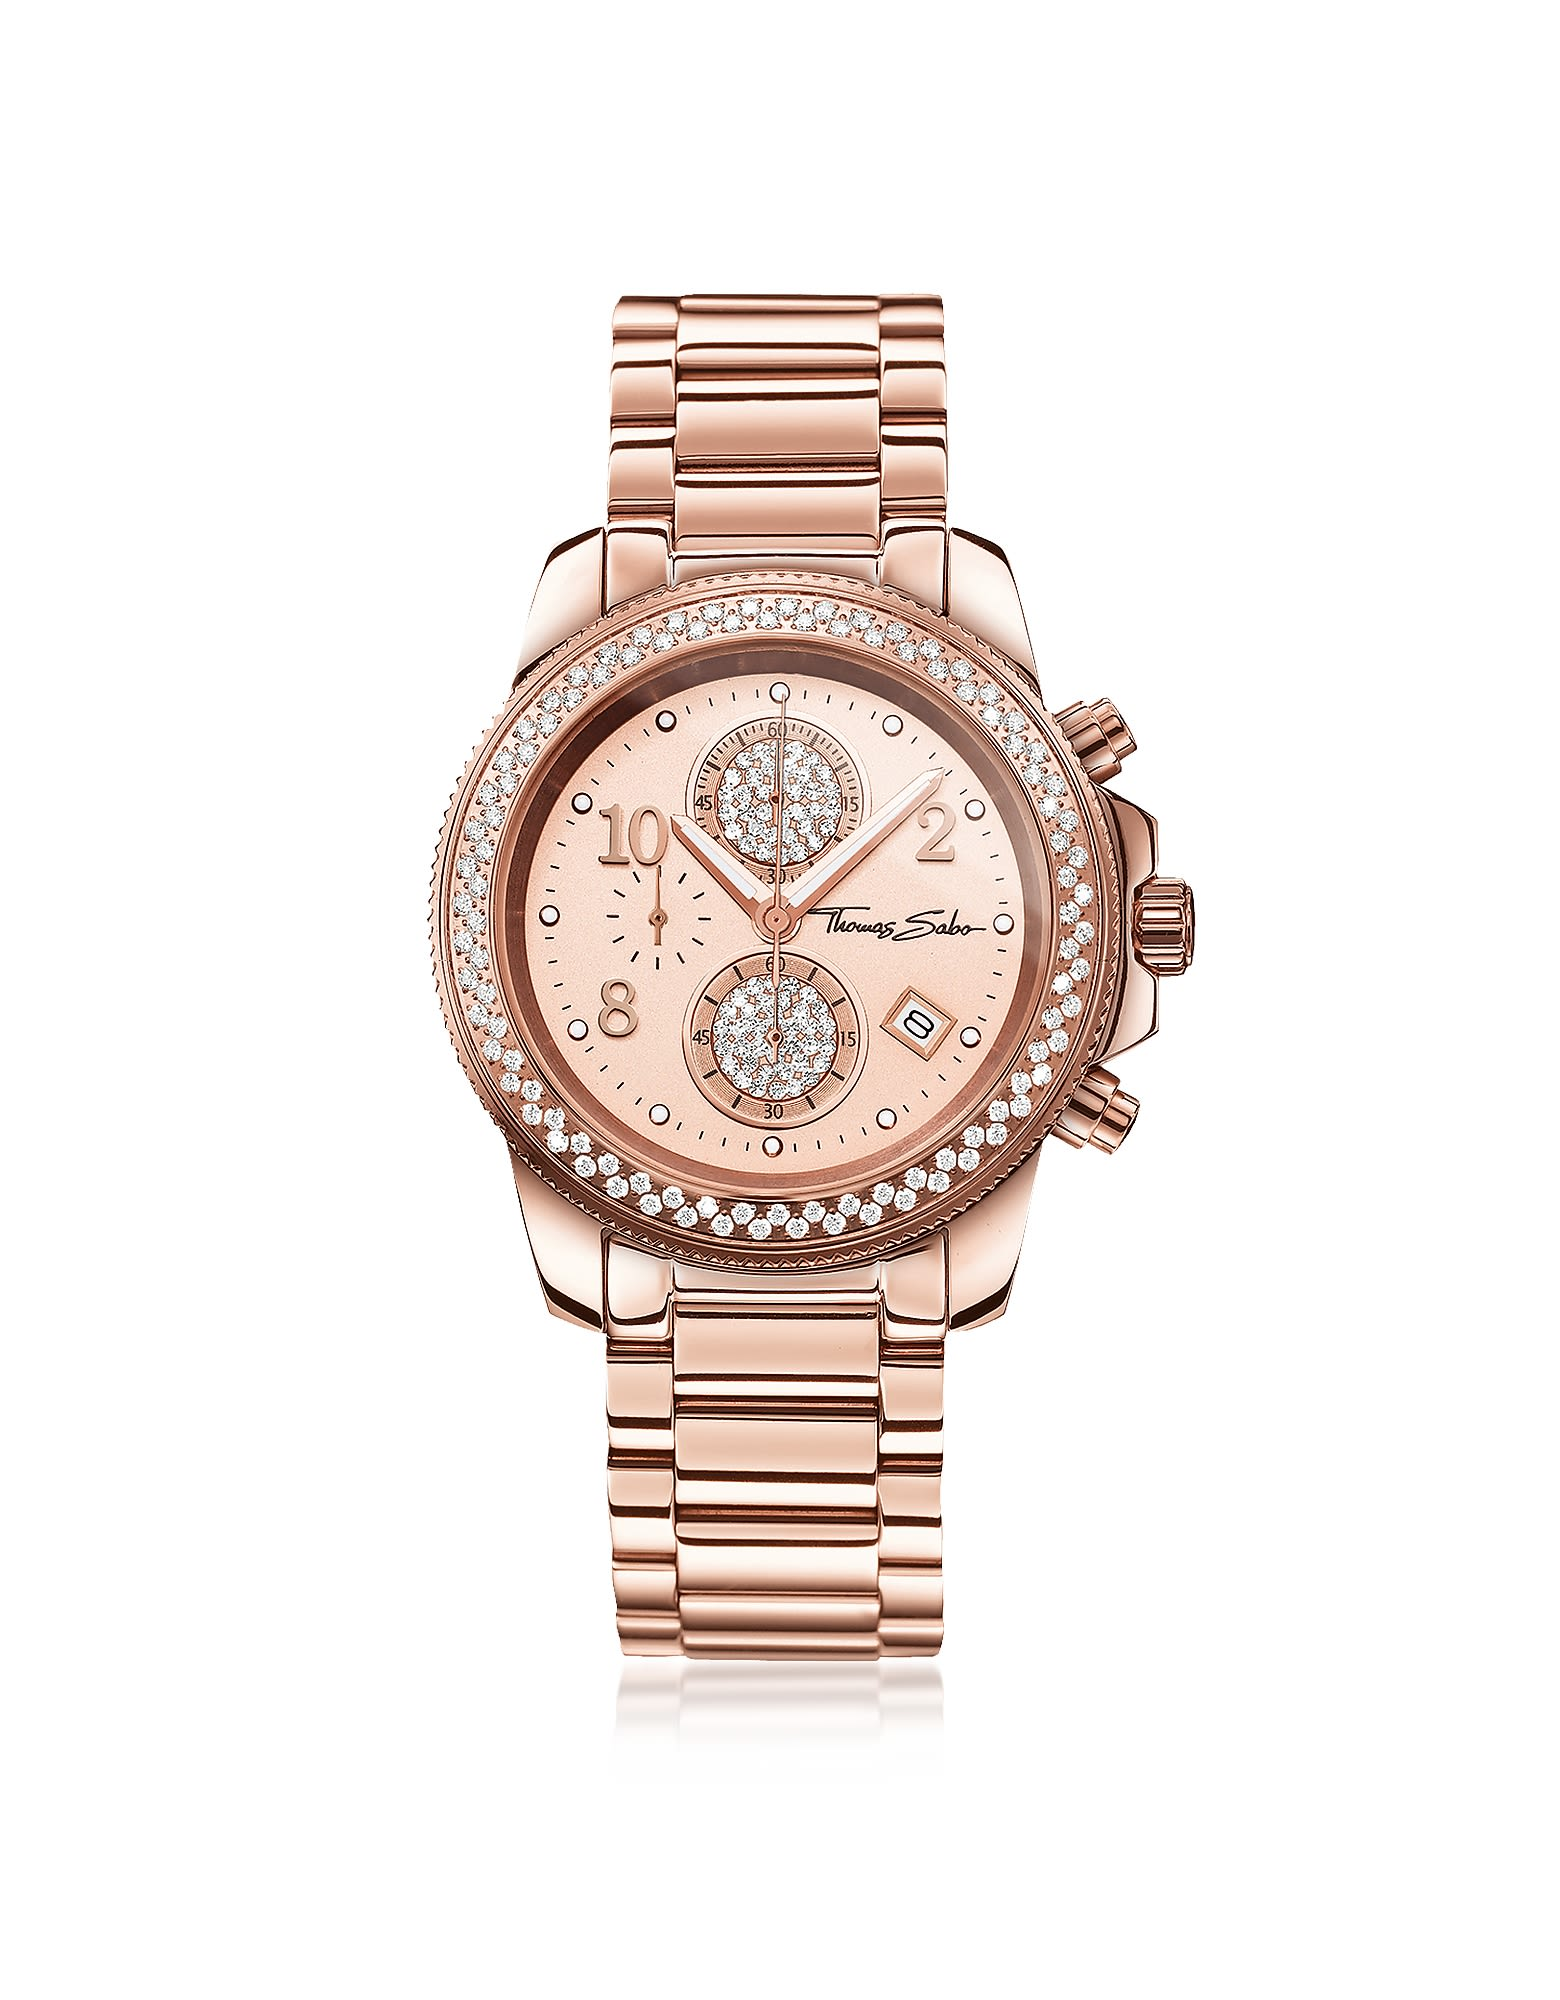 Thomas Sabo Glam Chrono Rose Gold Stainless Steel Women'S Watch W/Crystals in Pink